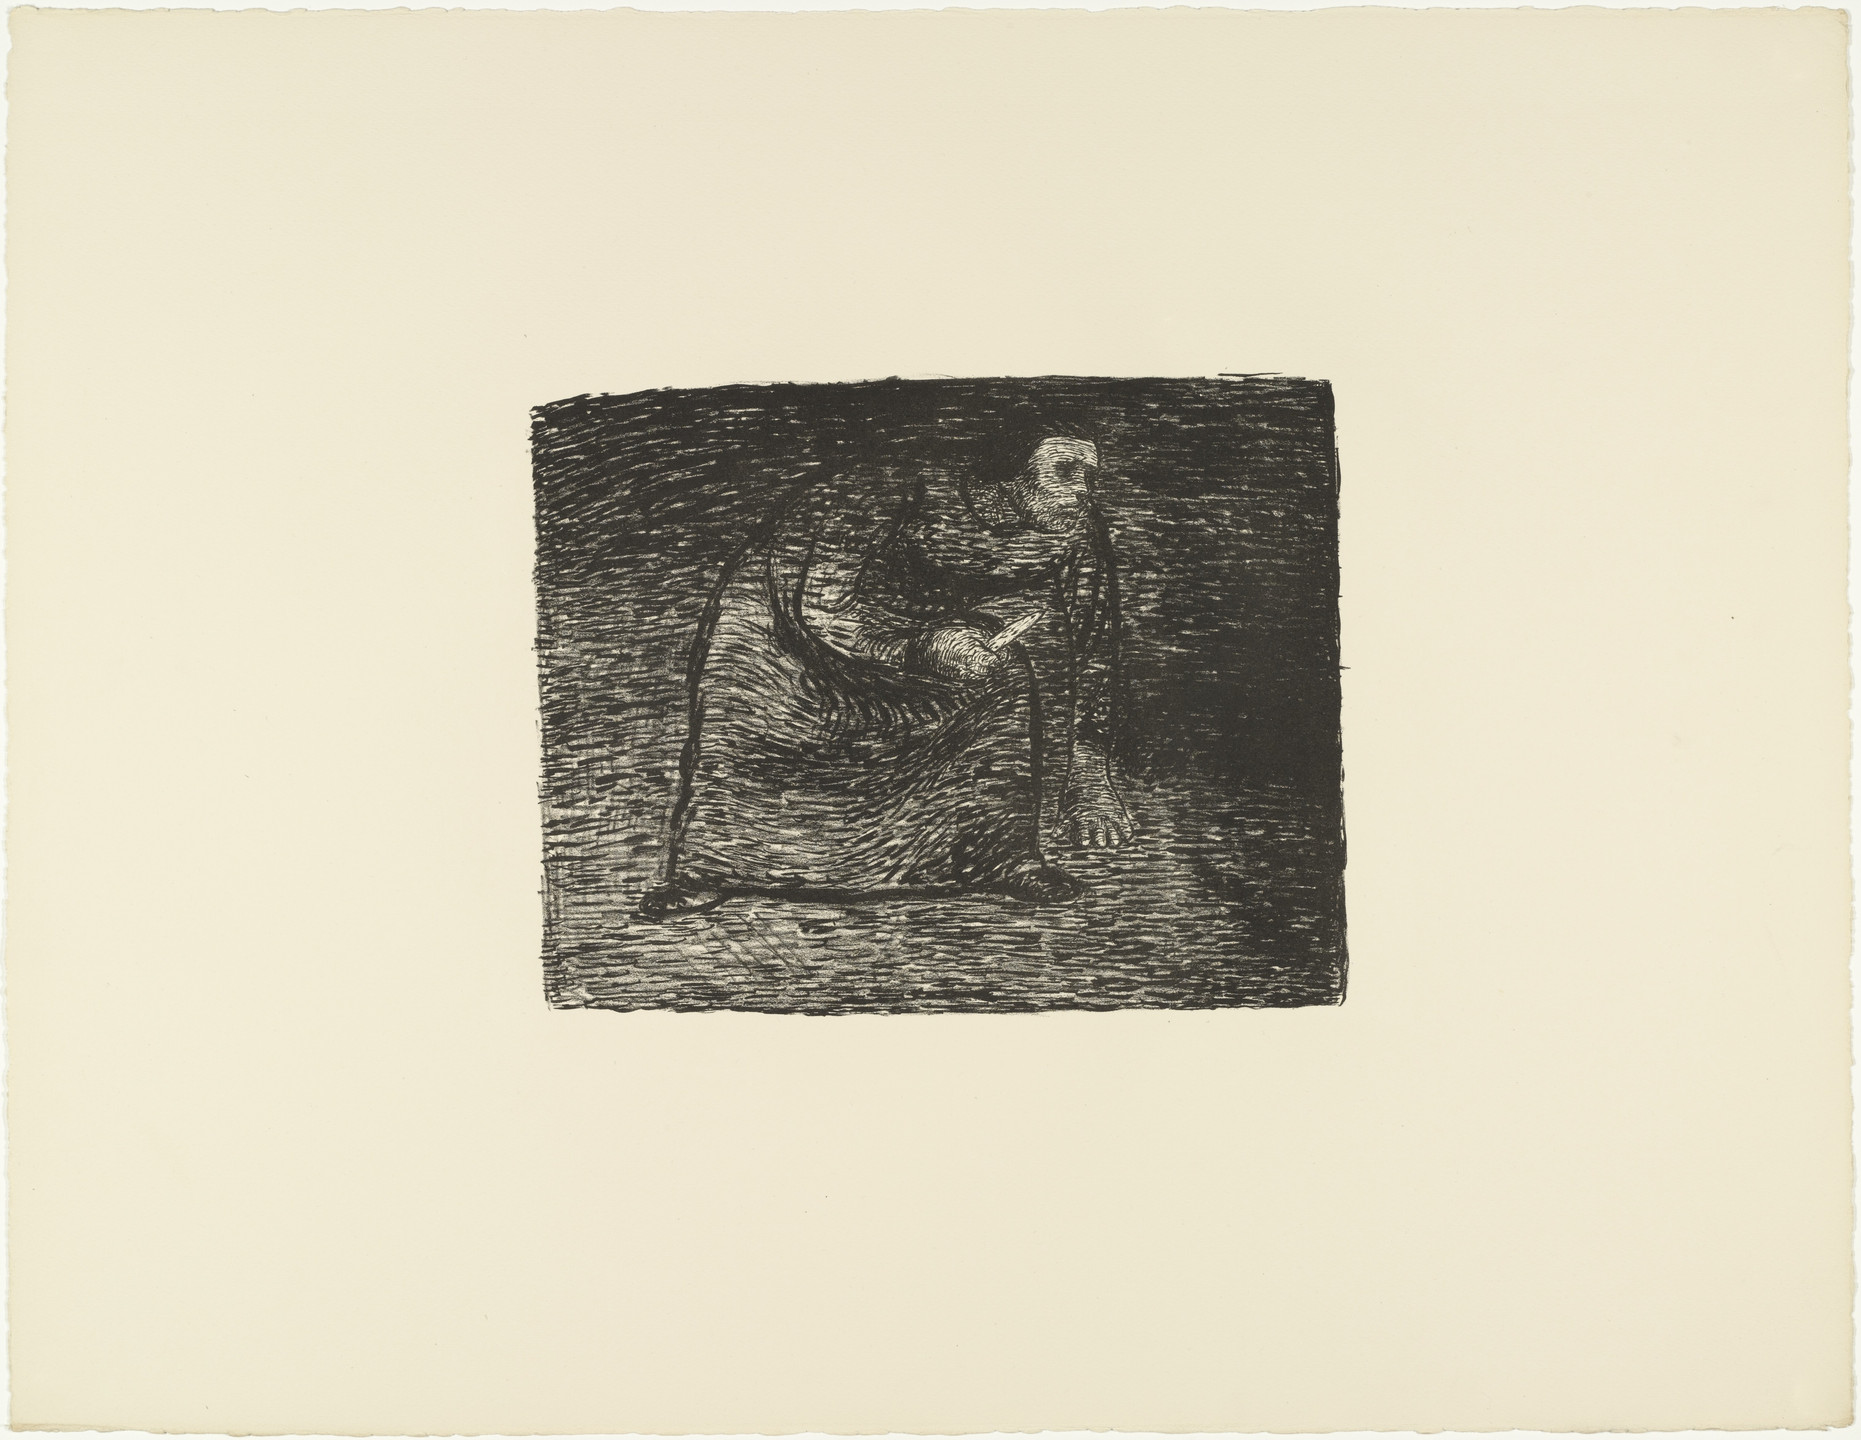 Ernst Barlach. Contemplating Murder (Auf Mord bedacht) from The Dead Day (Der tote Tag). (1910-11, published 1912)